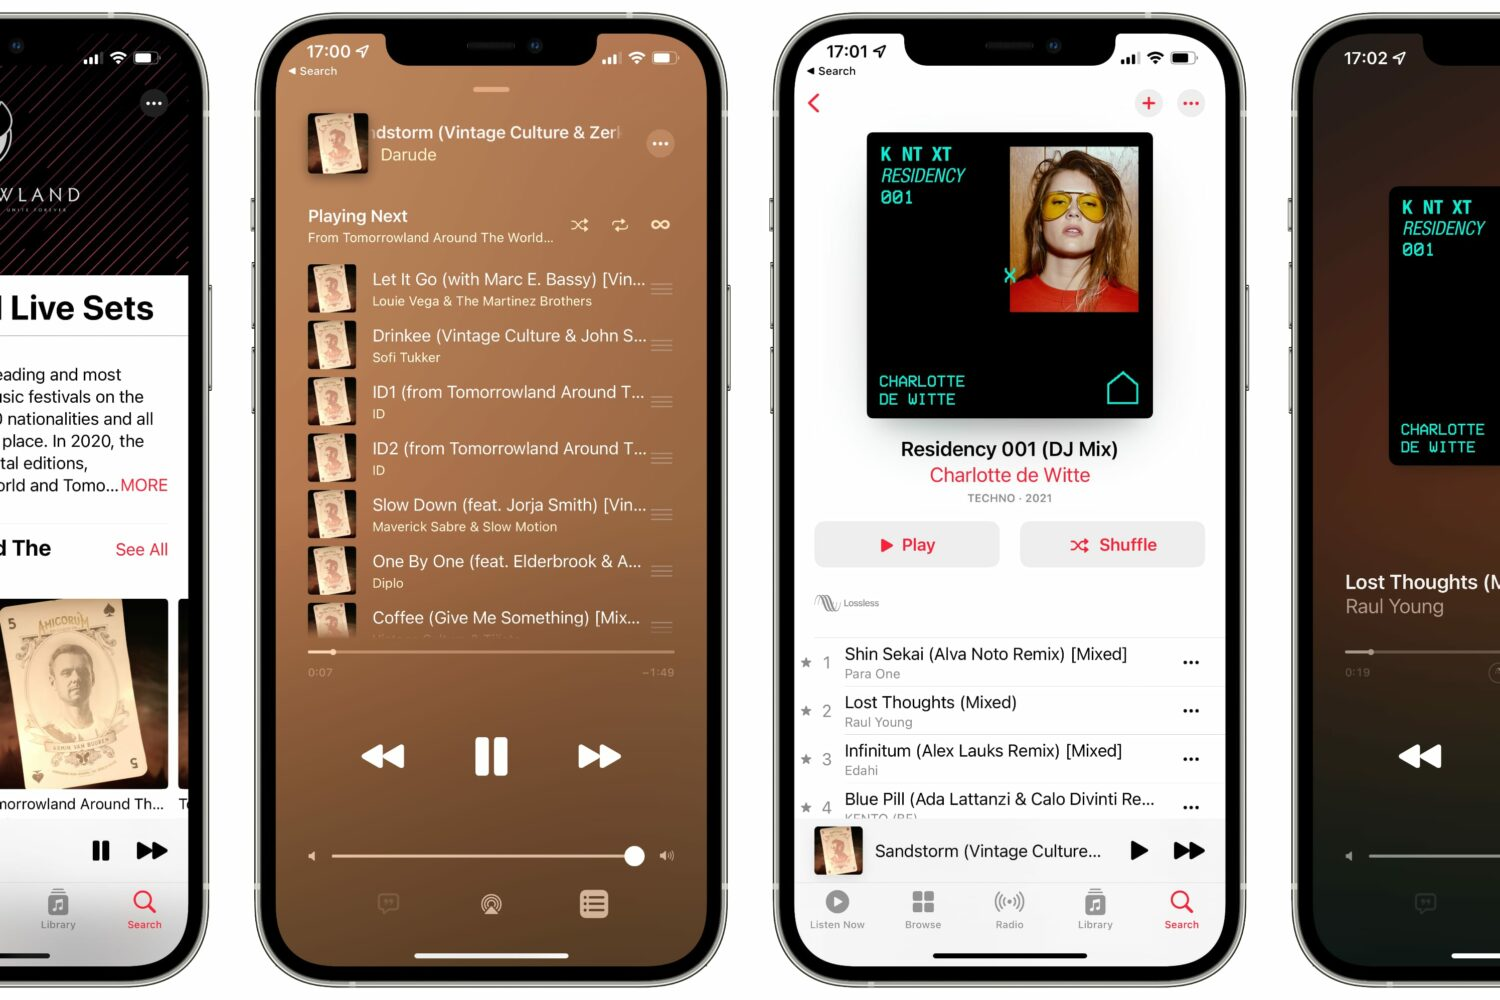 For iPhone screenshots showing DJ mixes on Apple Music